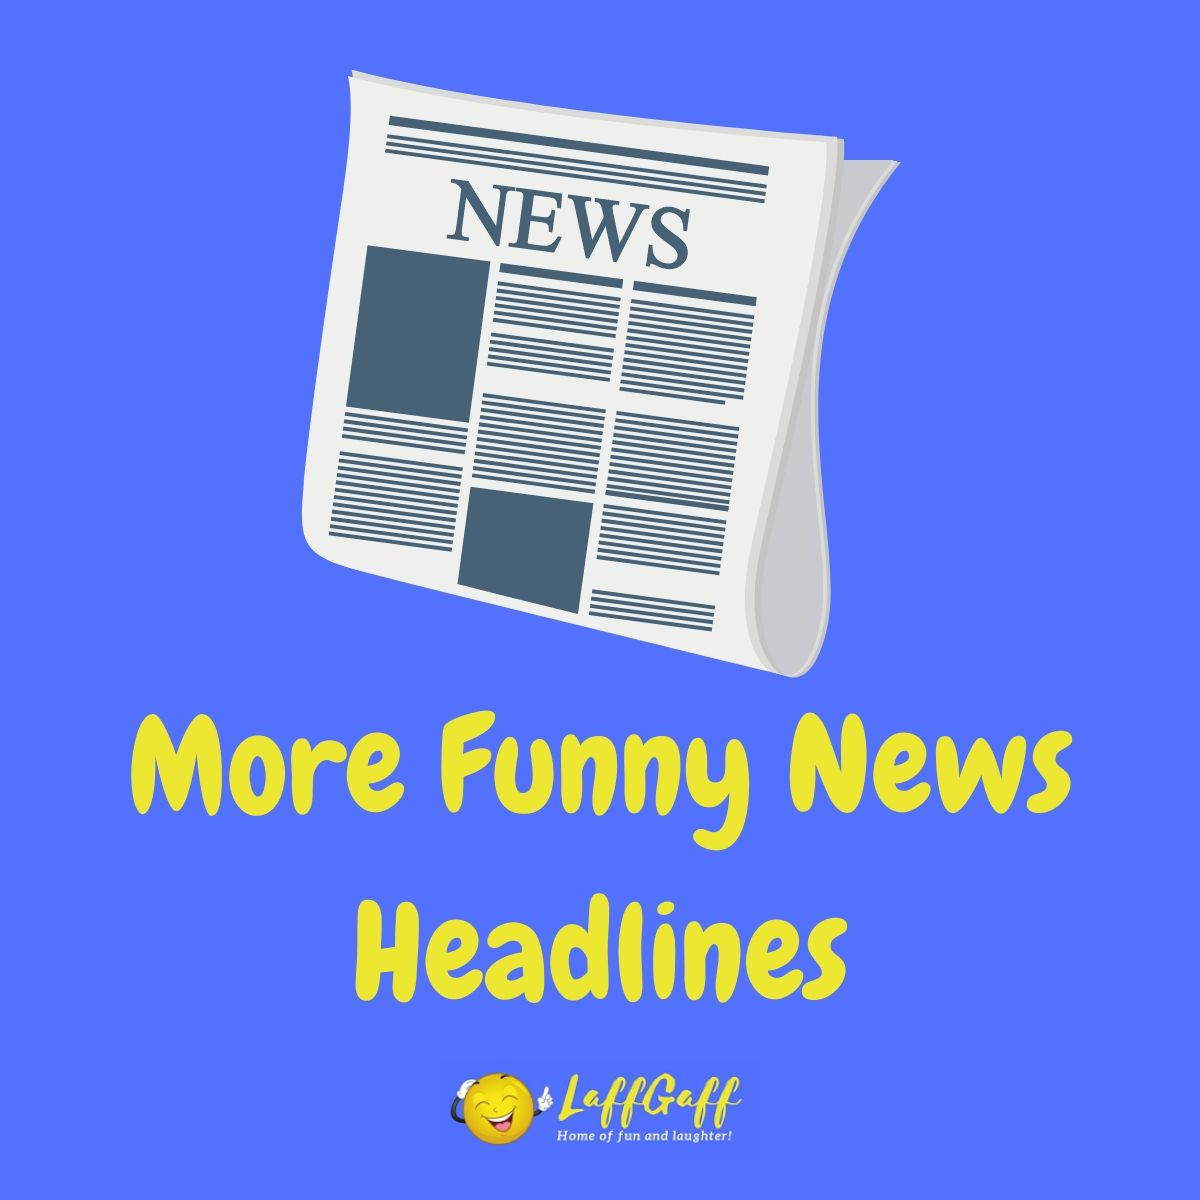 Featured image for a page of more funny news headlines.